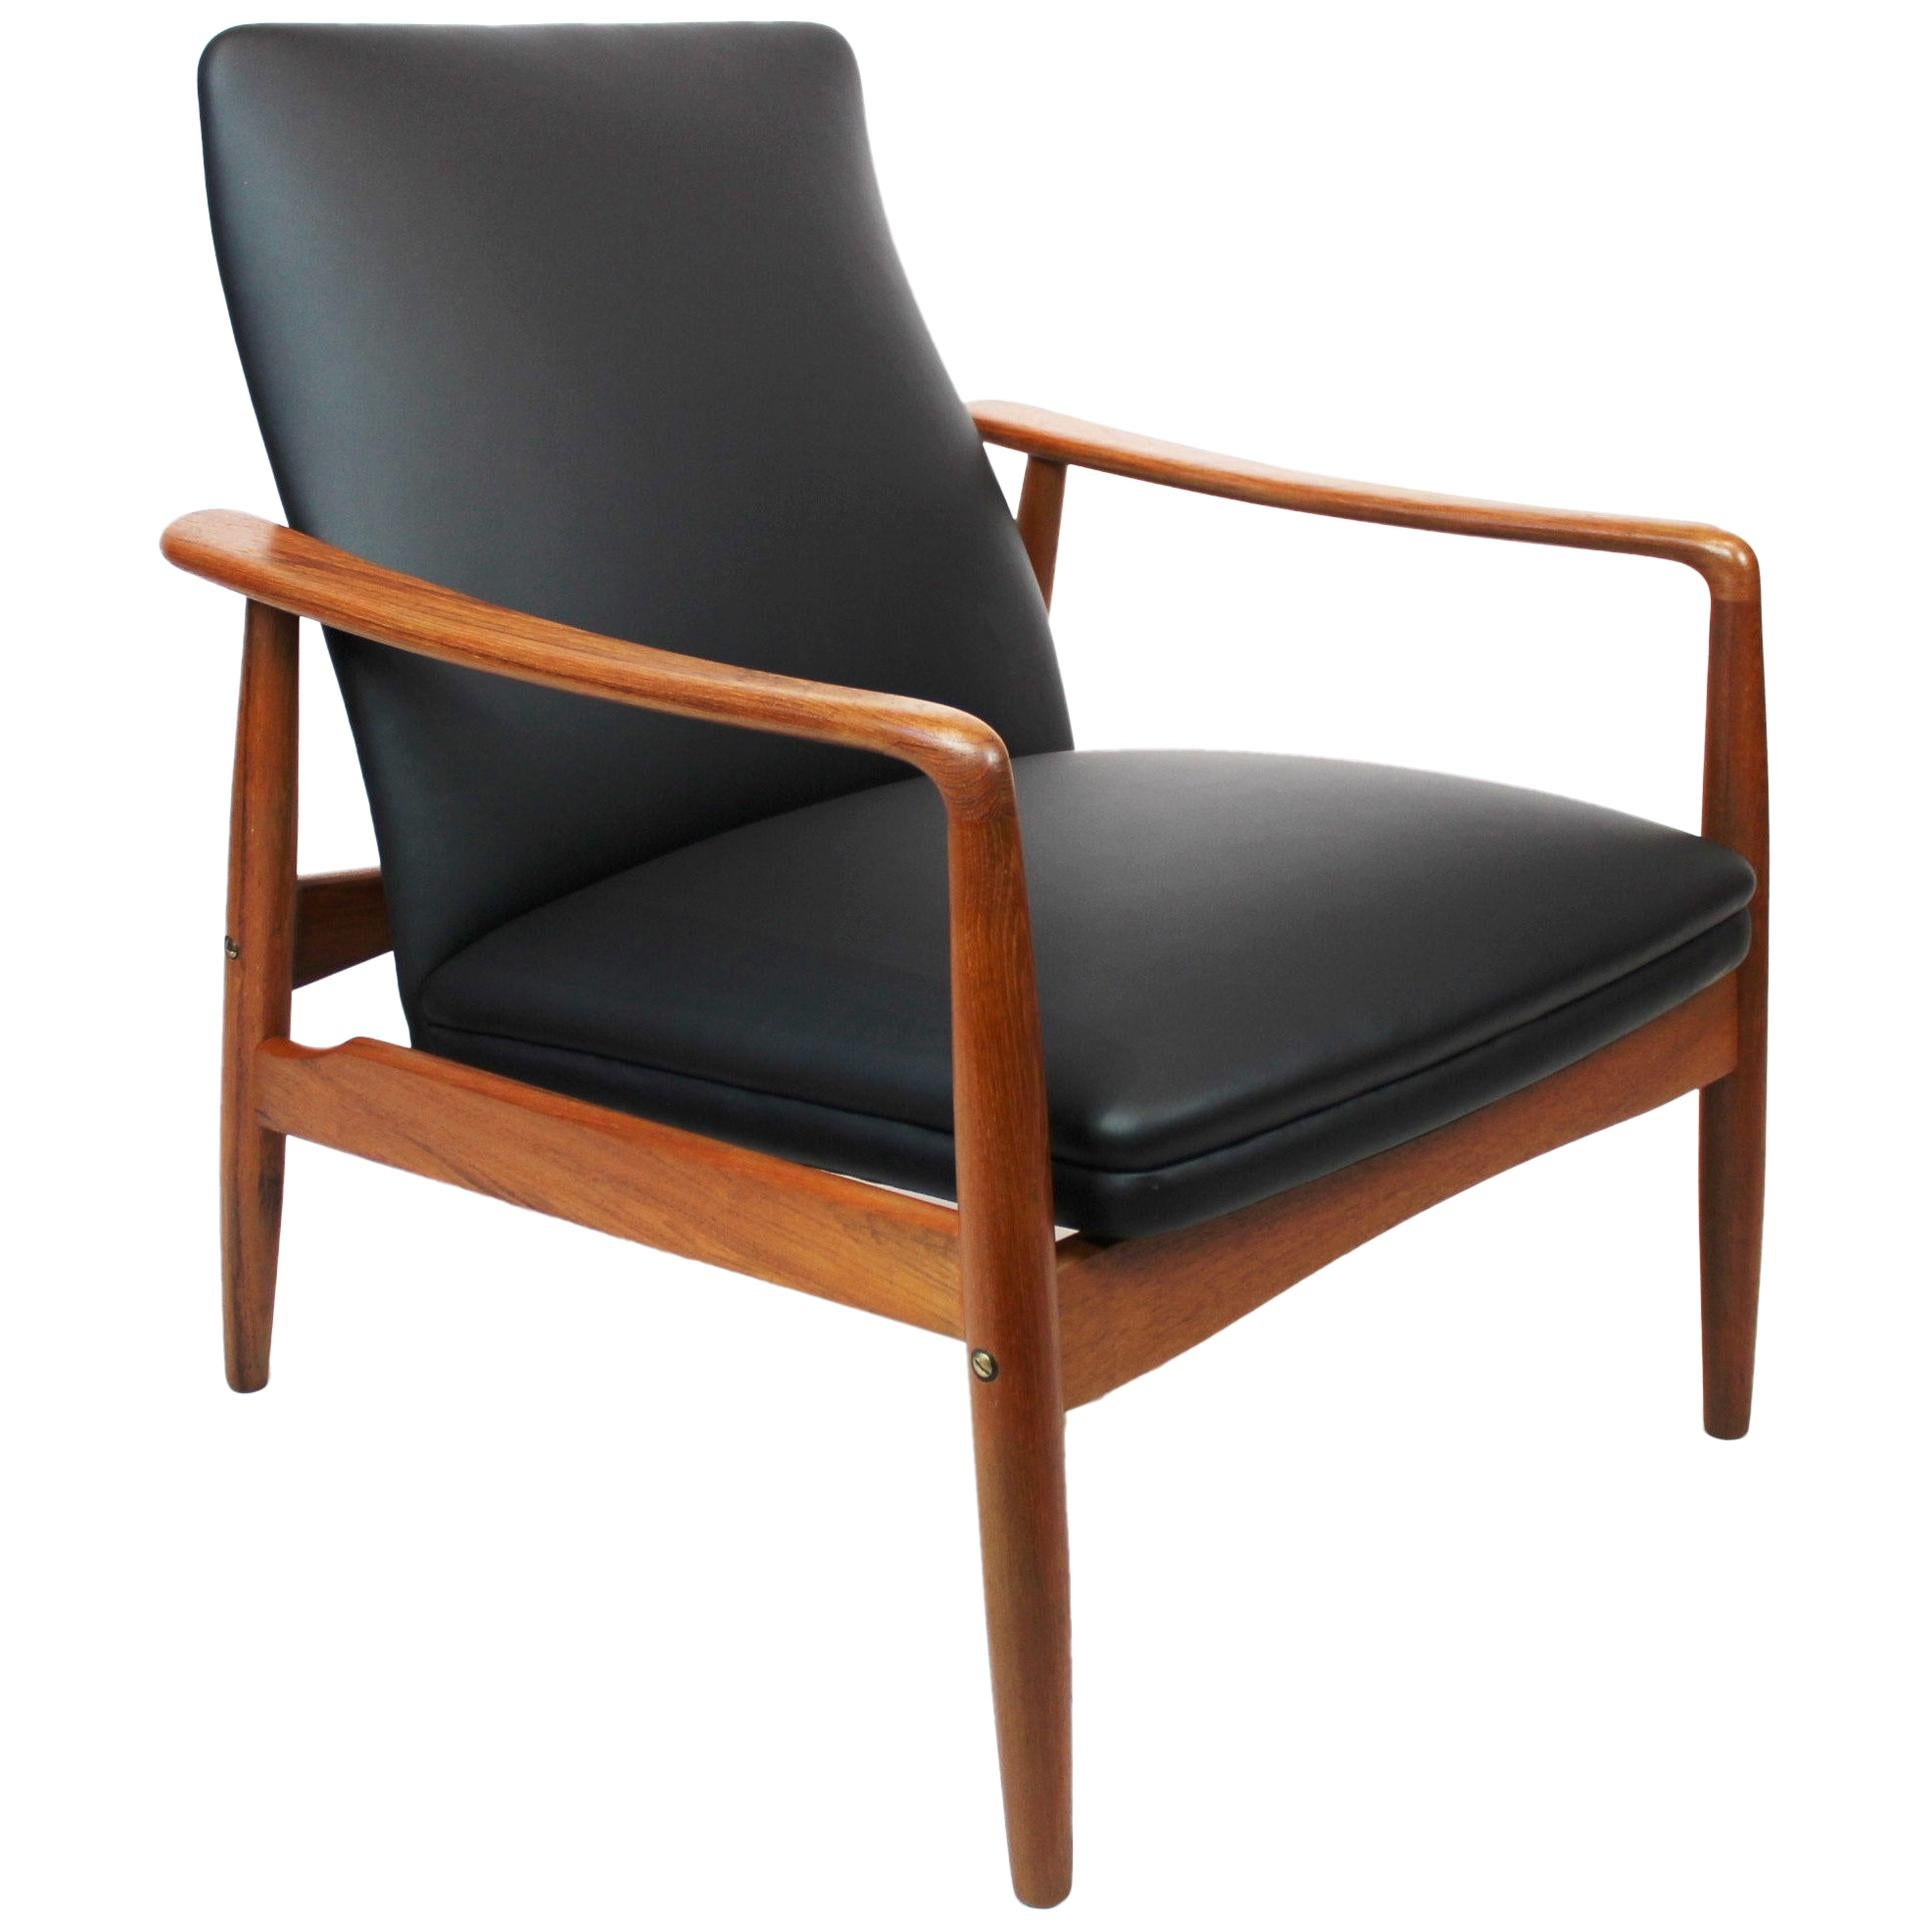 Easy Chair in Teak and Black Leather Designed by Søren Ladefoged in the 1960s